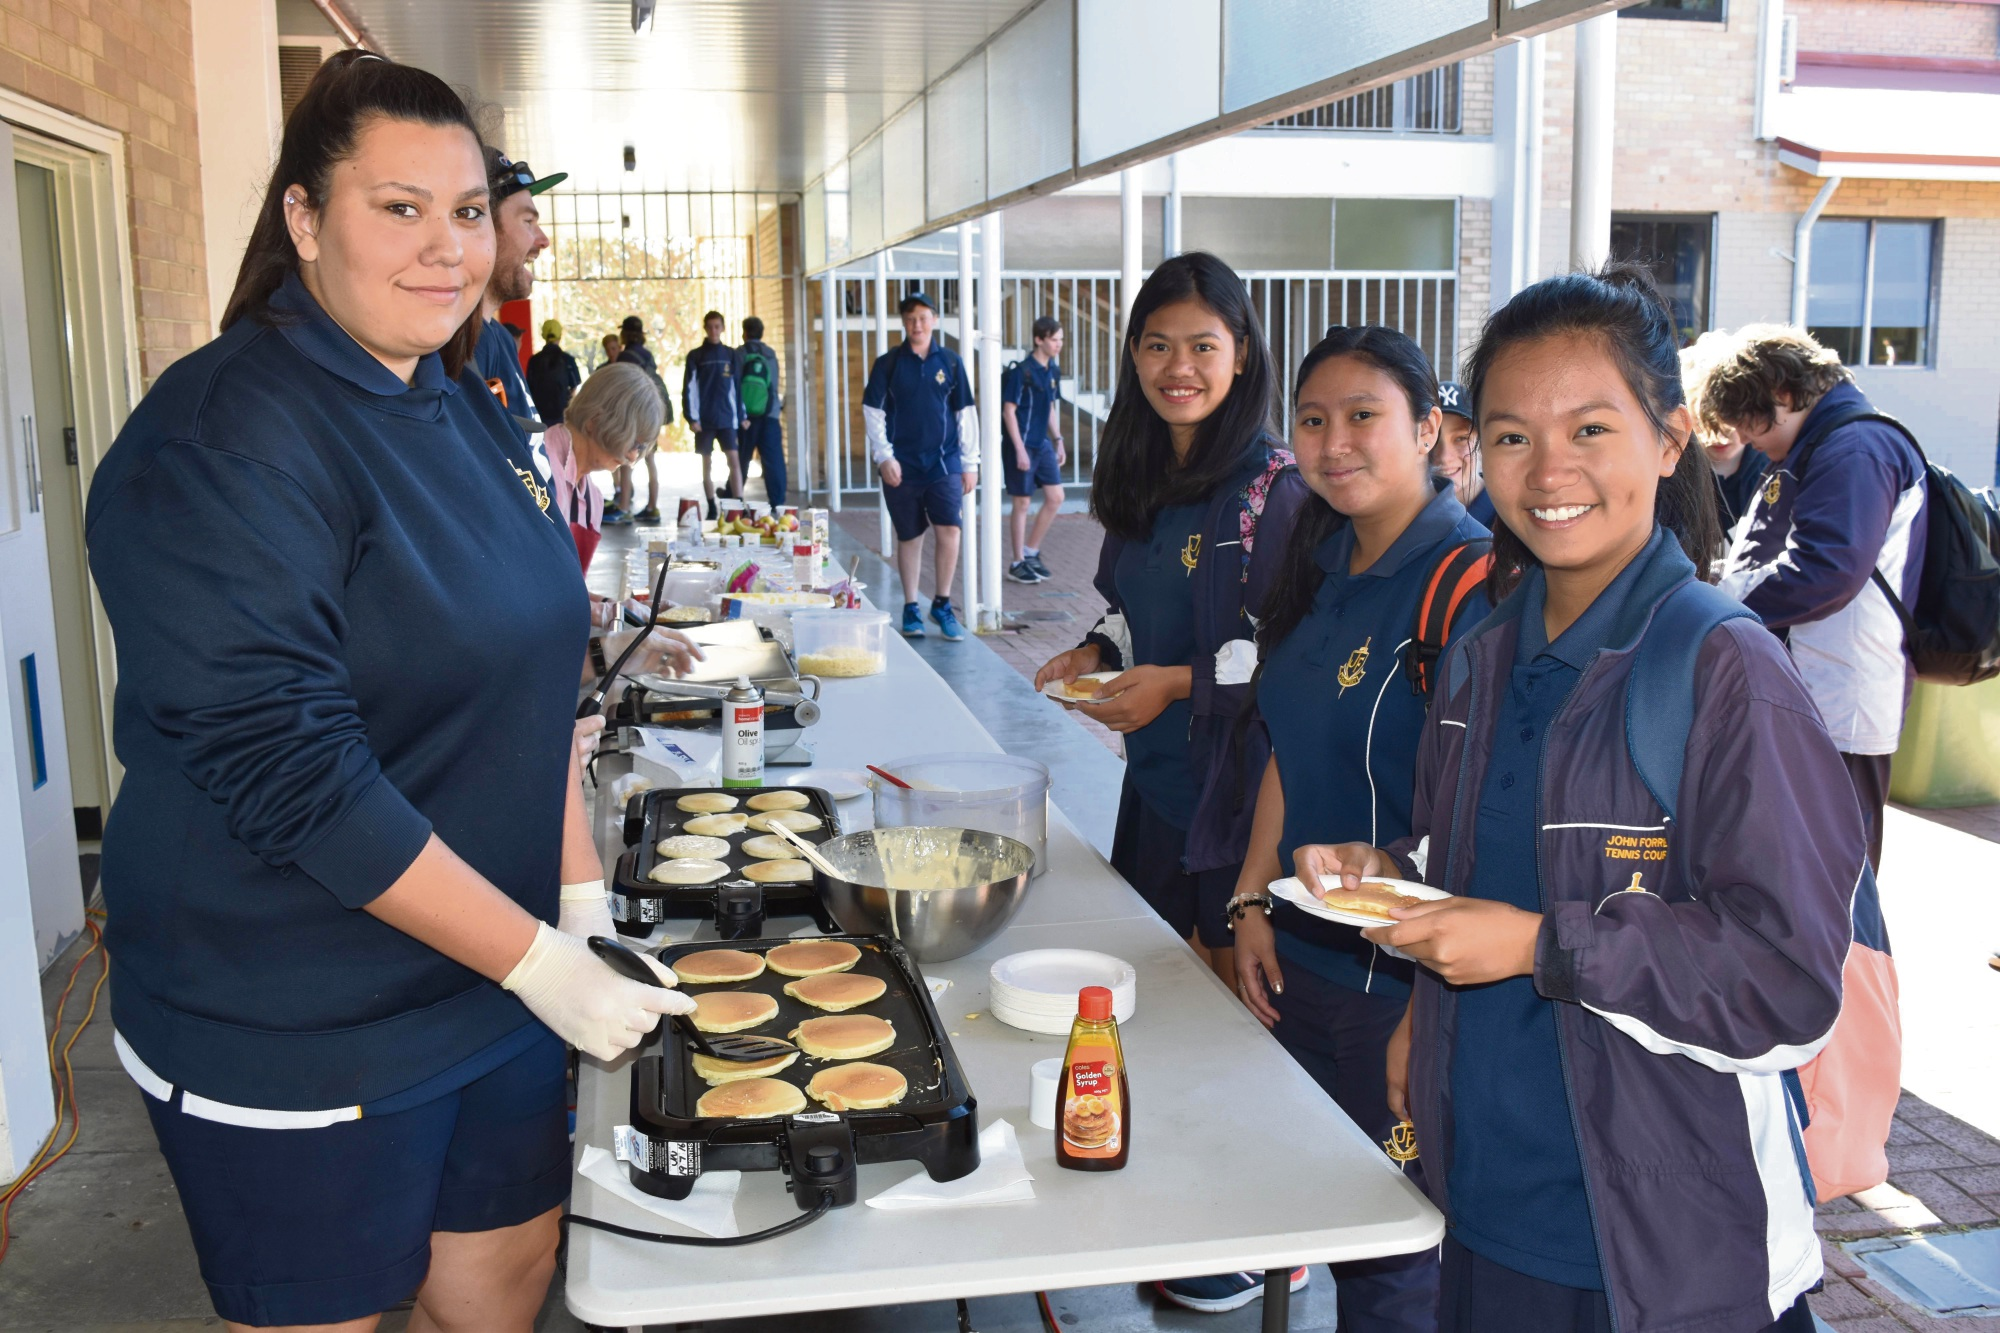 Year 11 student Simone Cronje serves up pikelets to Year 10 students Angela Erika Dela Cruz, Asha De Leon and Christine Sinon.